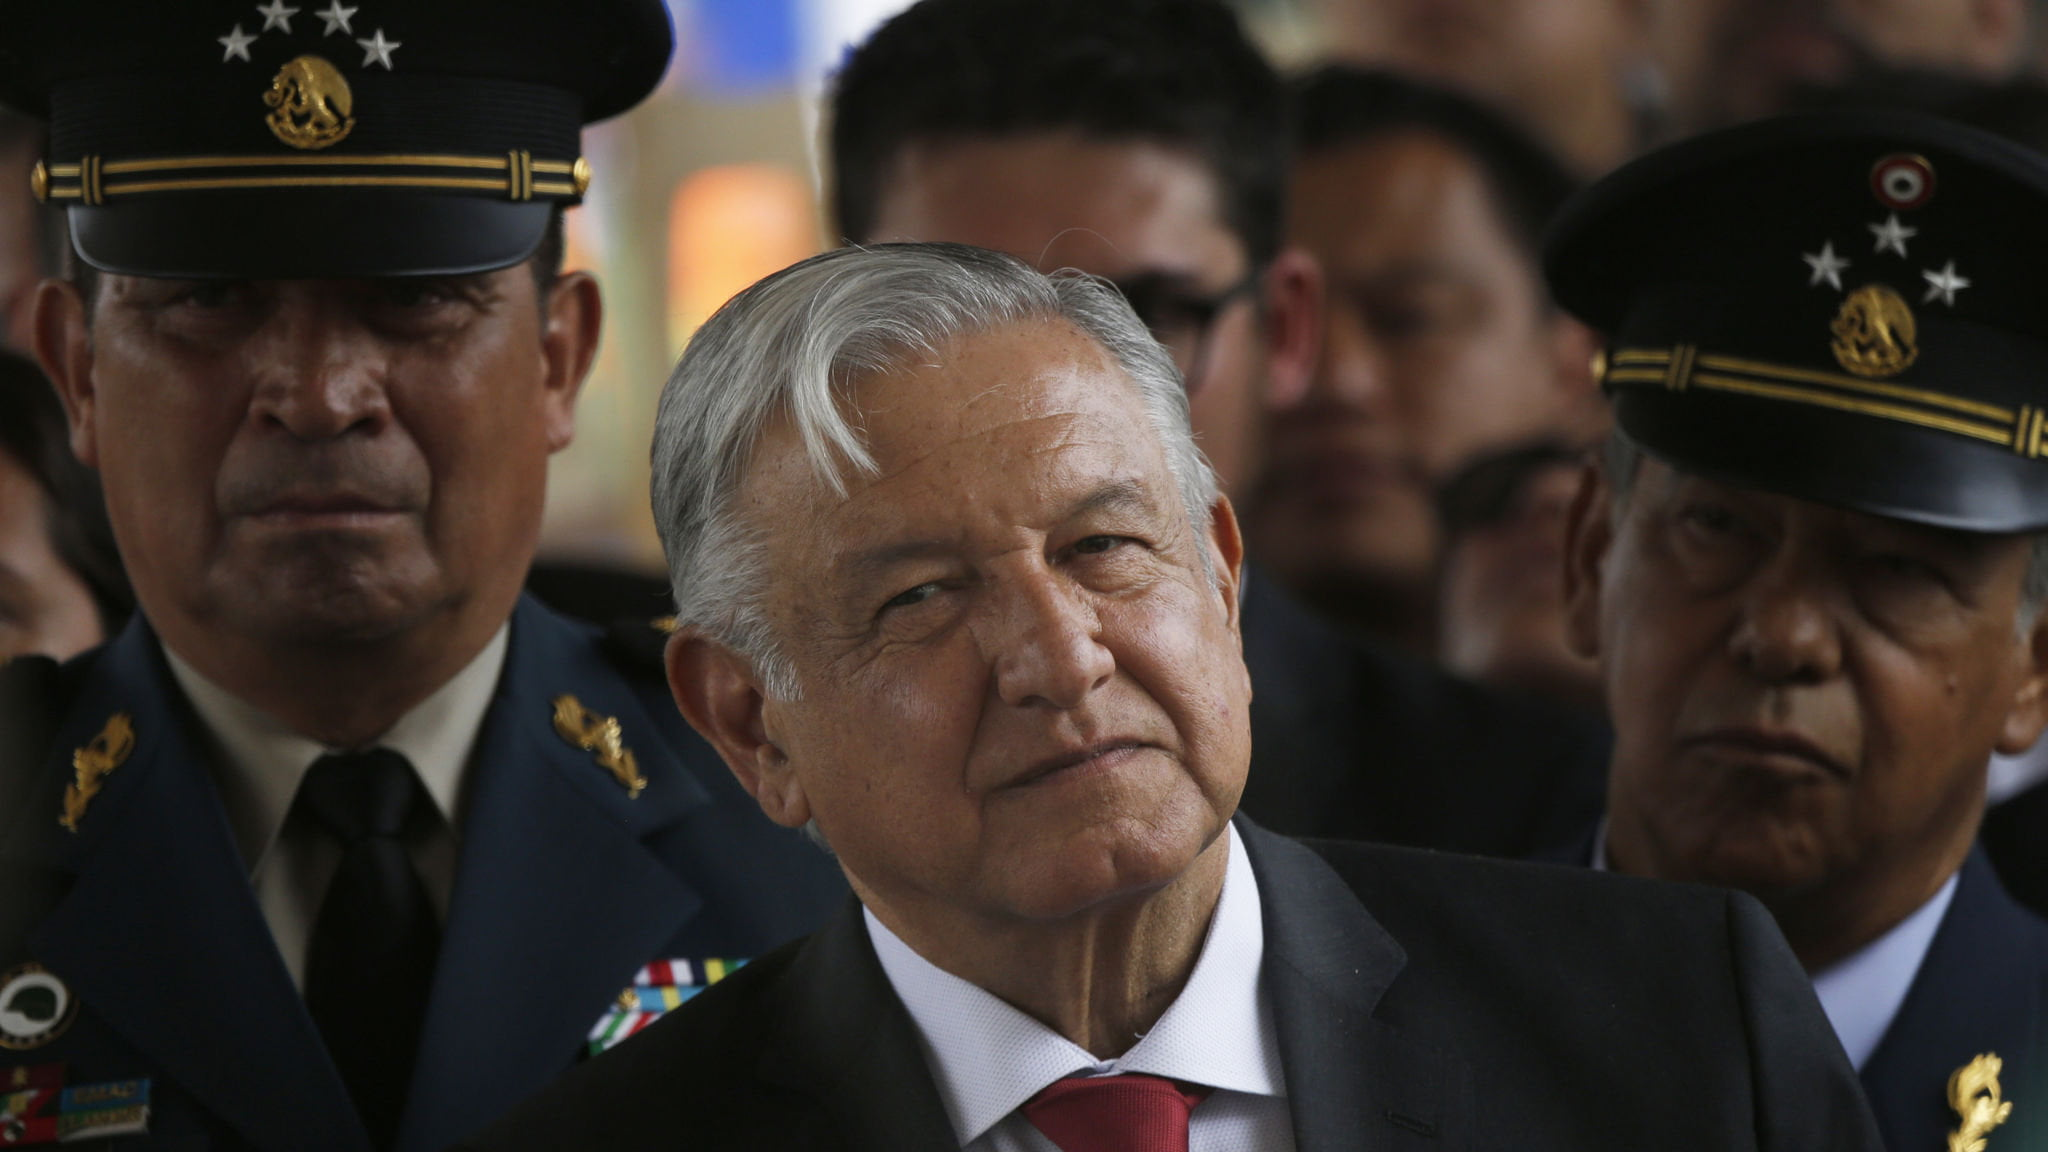 This is what López Obrador said in his second government report